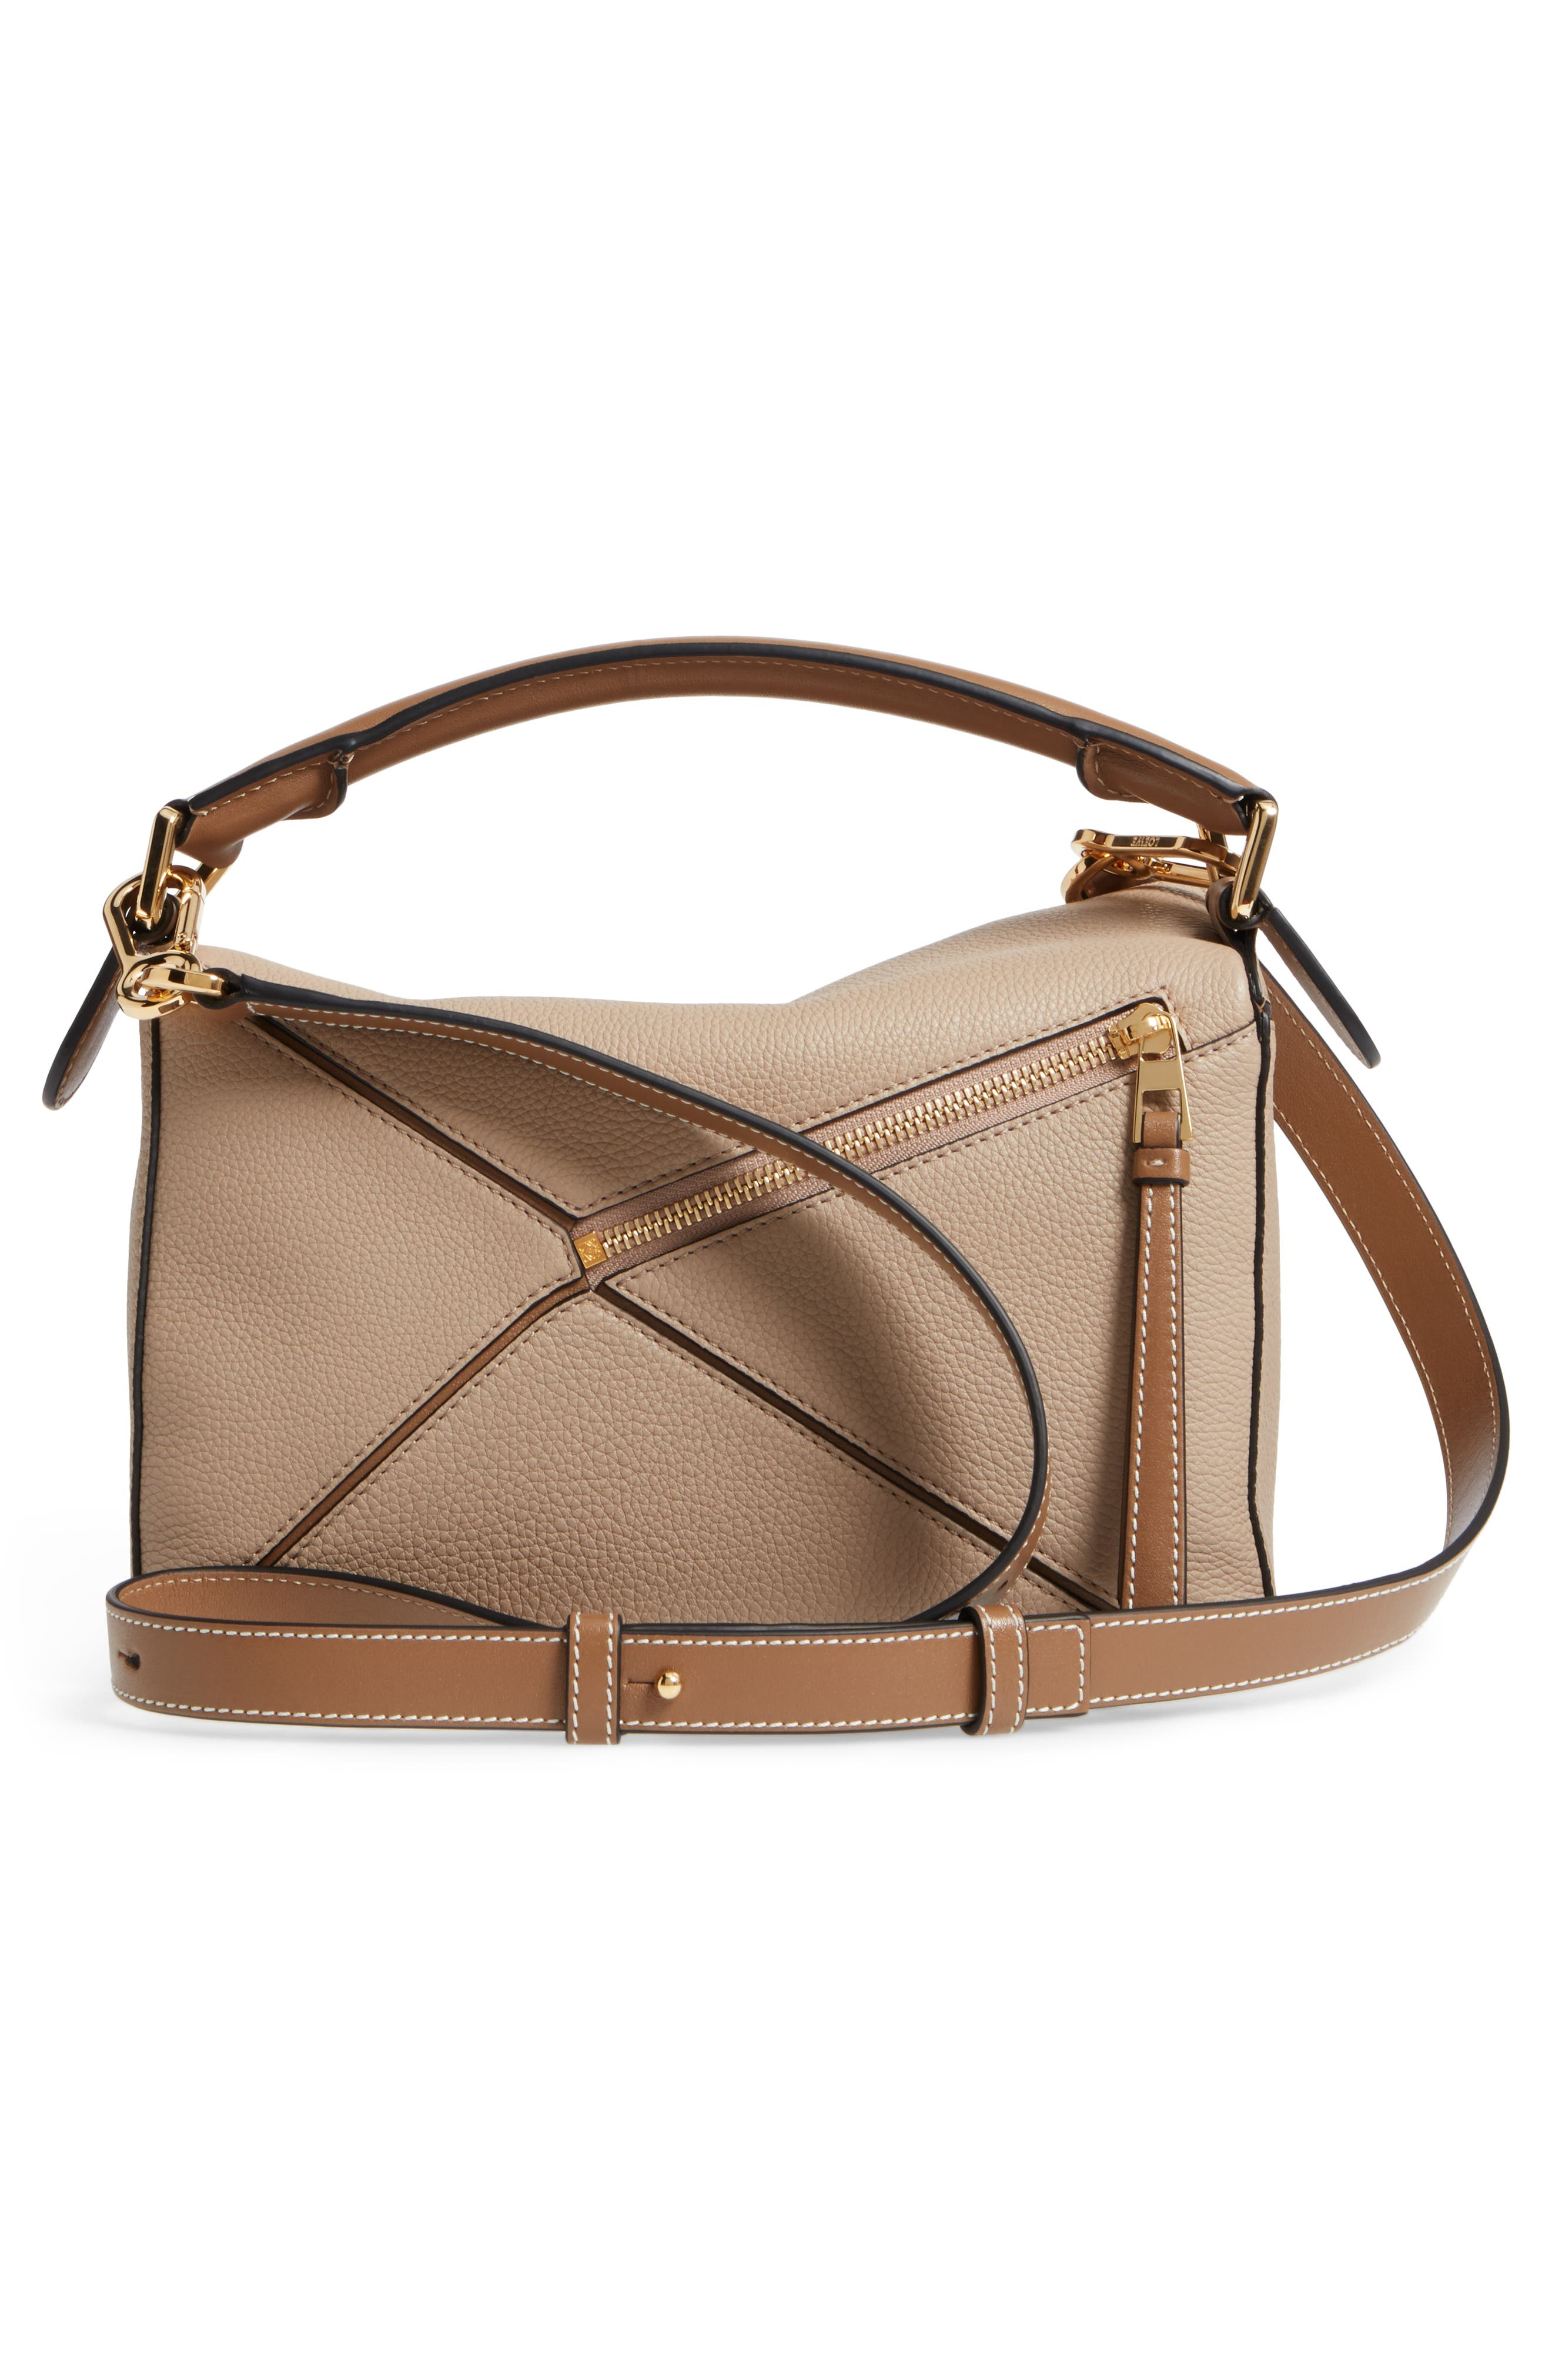 Small Puzzle Leather Bag,                             Alternate thumbnail 3, color,                             Sand/ Mink